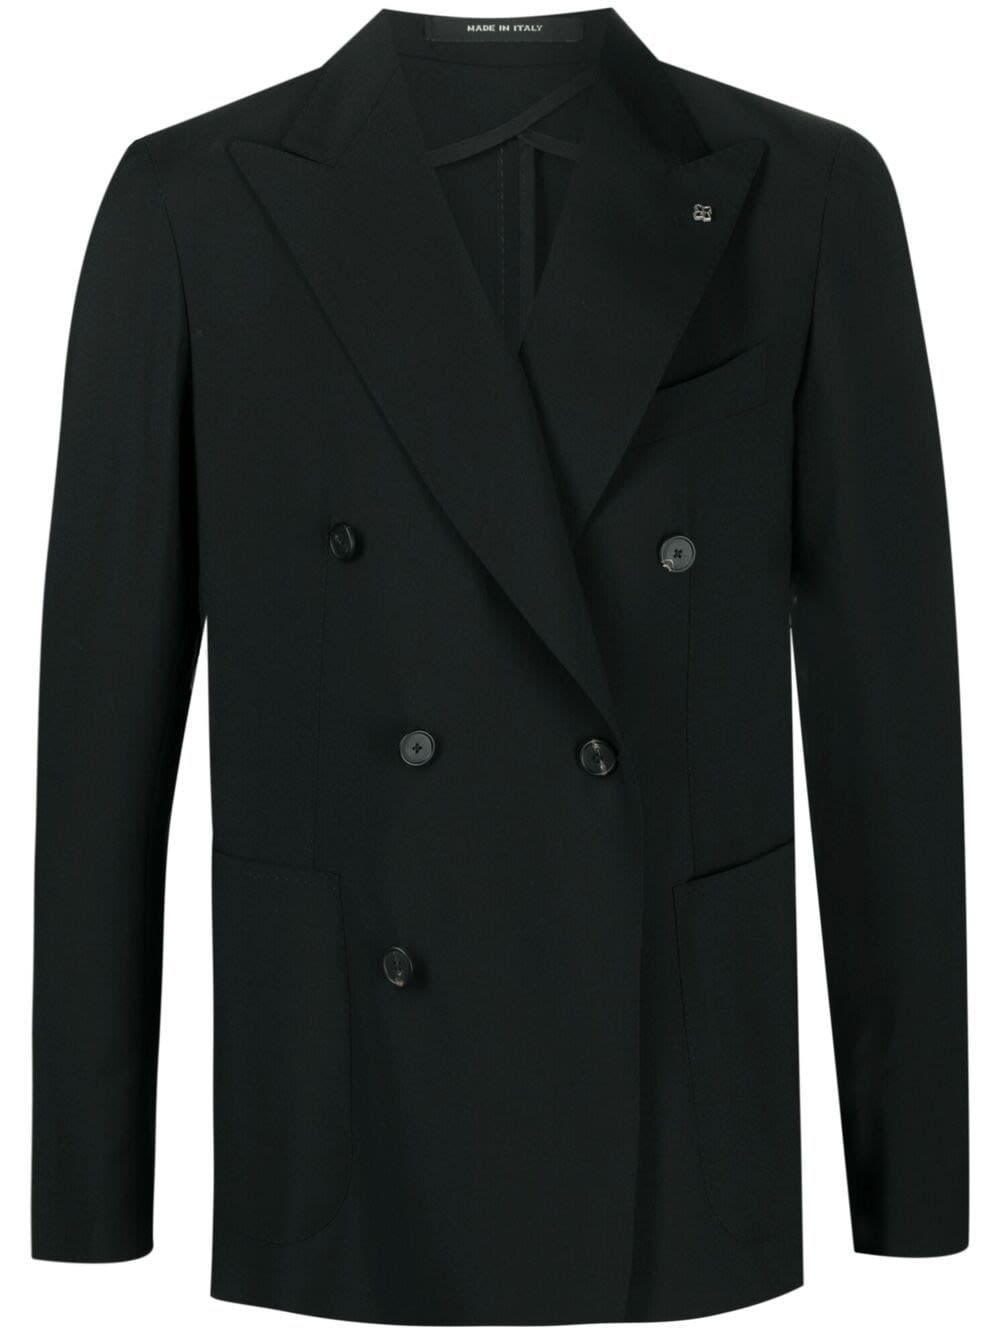 Tagliatore DOUBLE-BREASTED JACKET IN BLACK WOOL